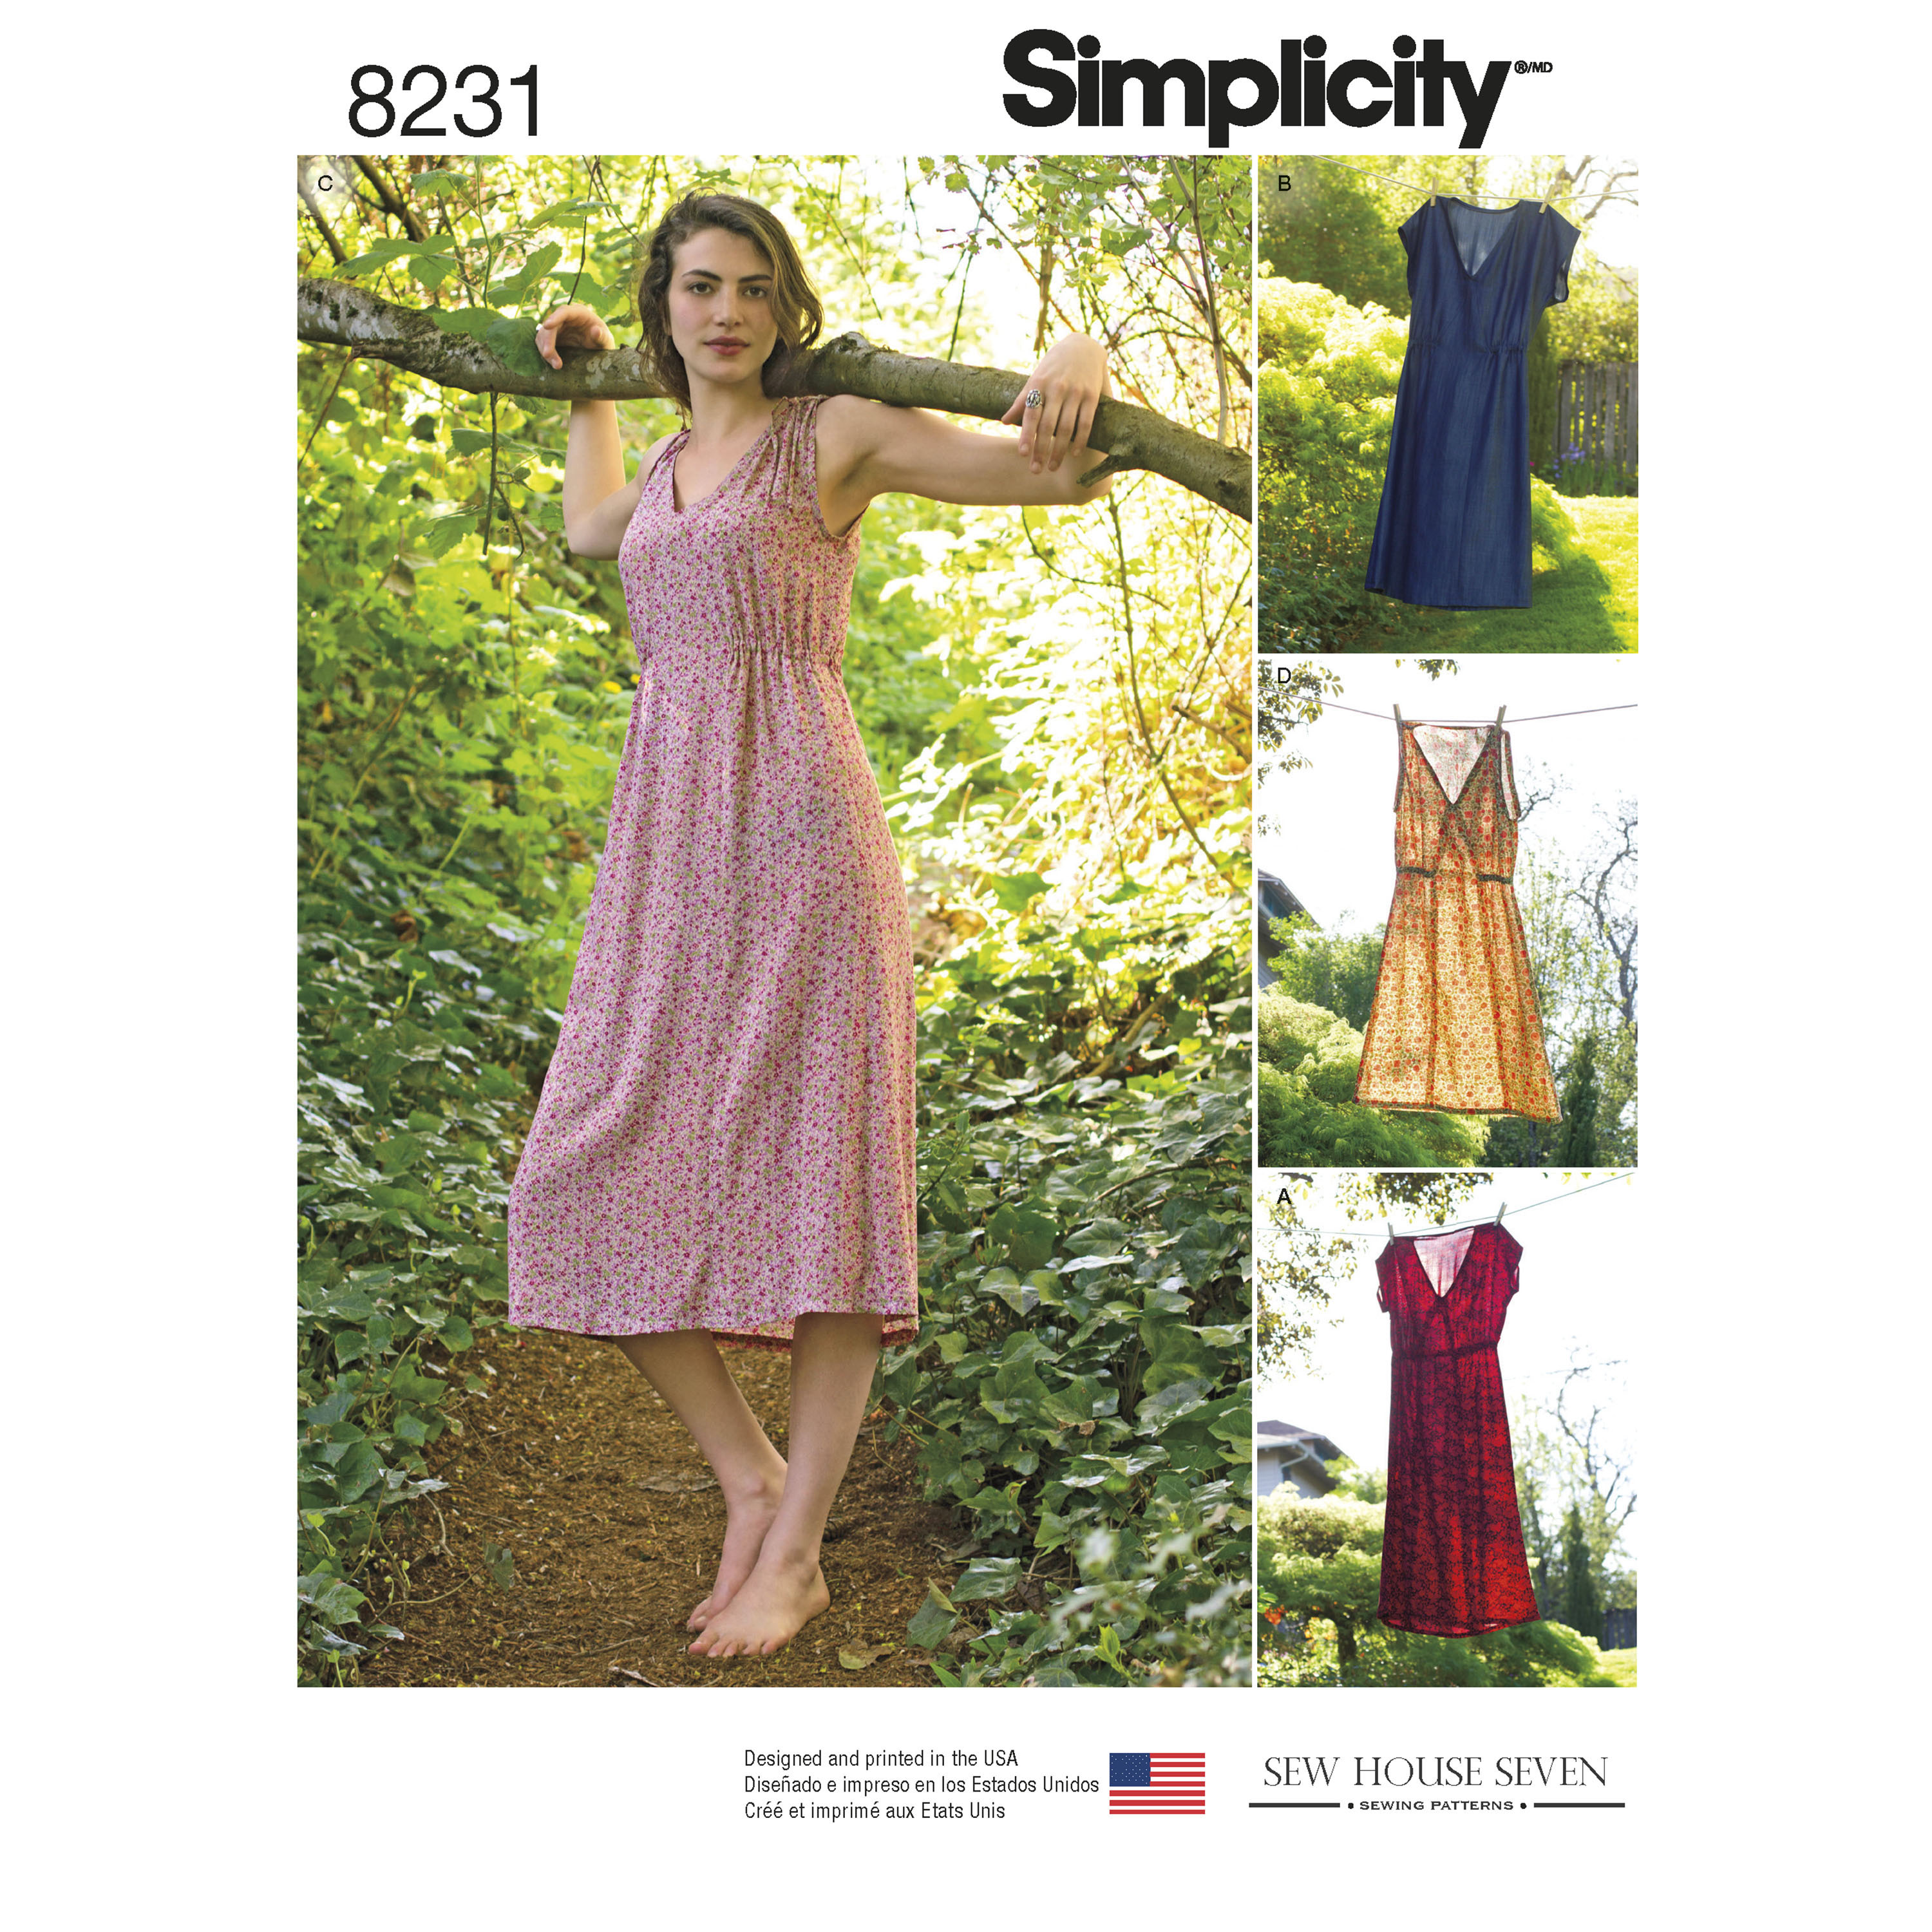 New Simplicity Patterns and $3.99 Sale 8/14/16 - PatternReview.com Blog